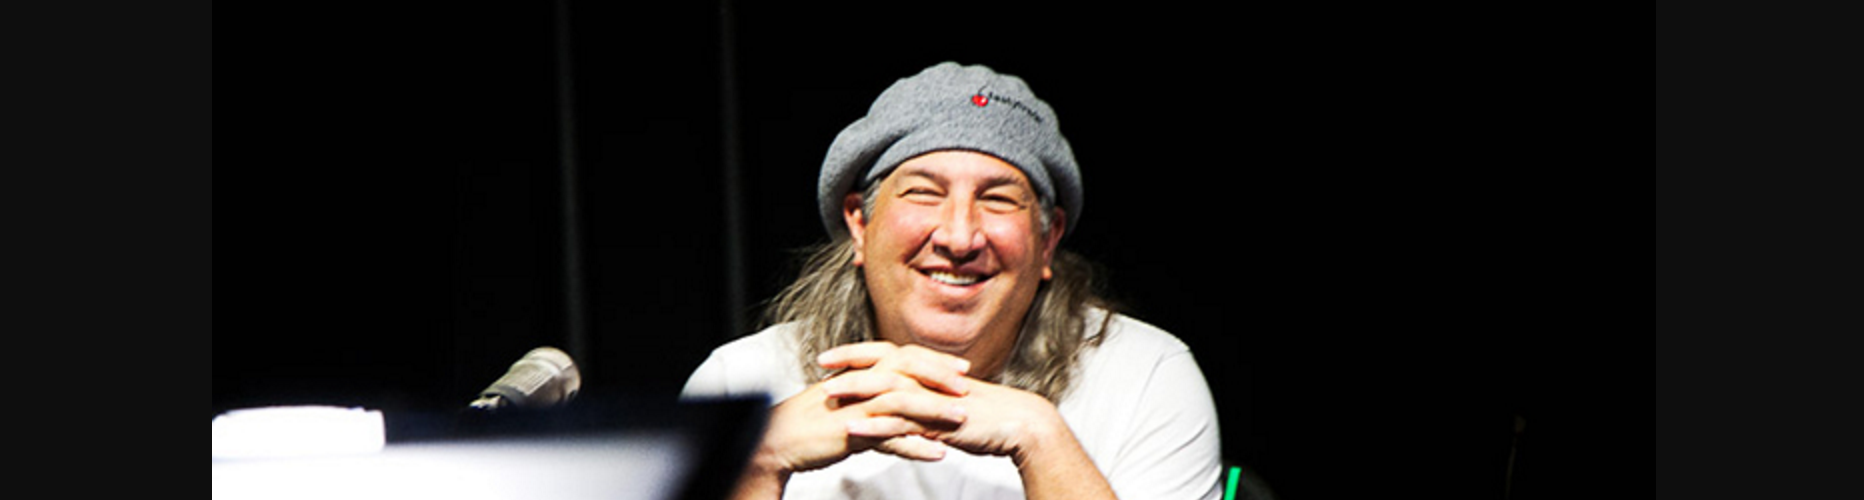 Founders' Stories with Tom Sosnoff of tastytrade